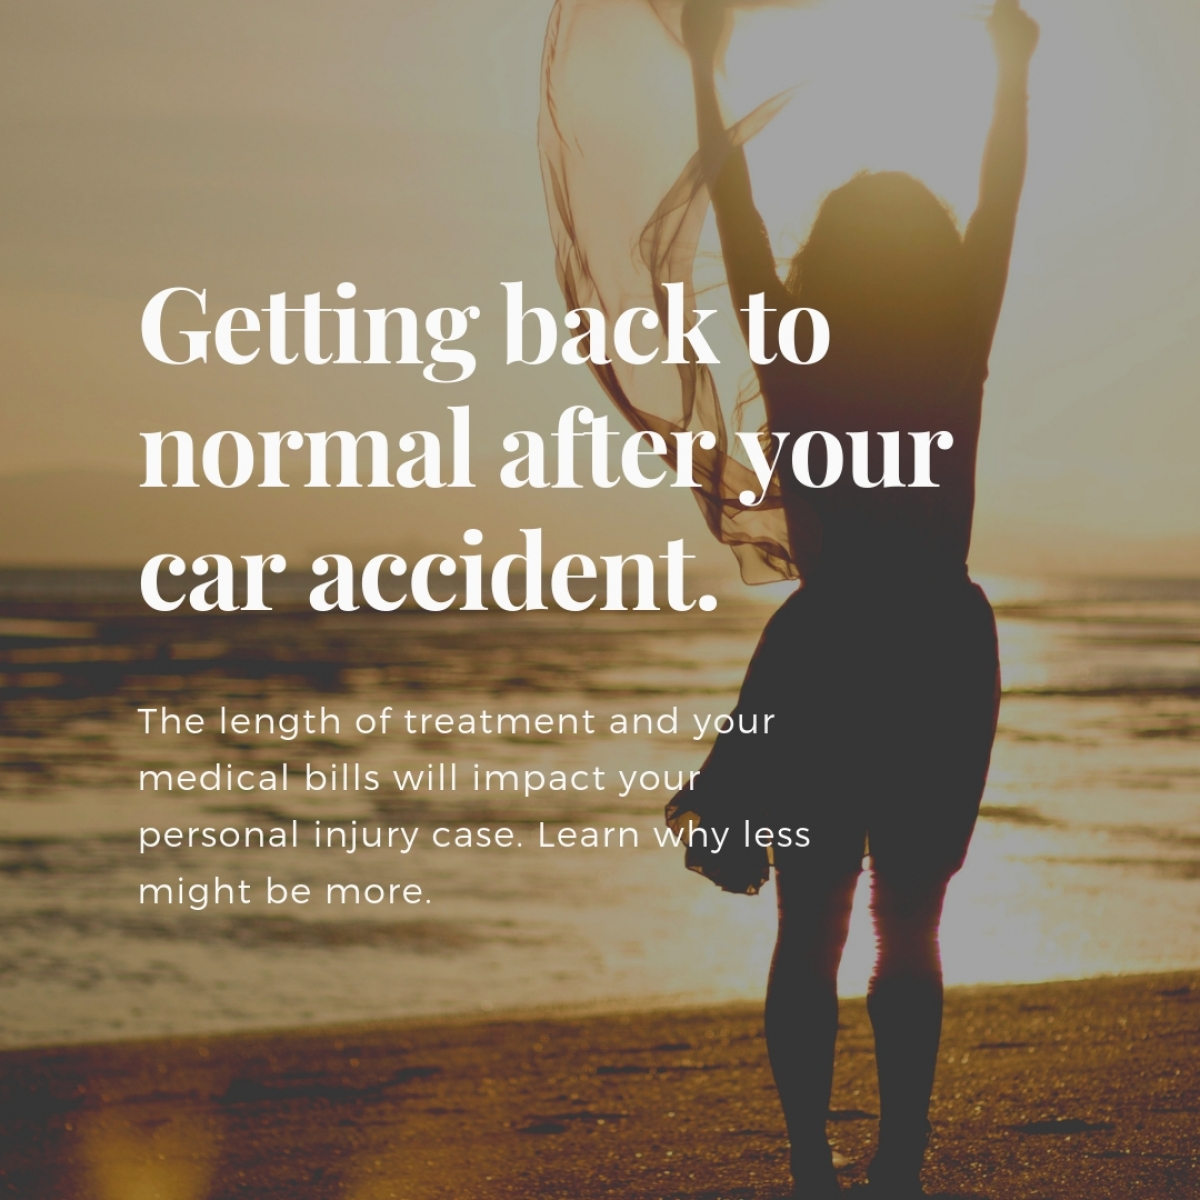 Getting back to normal after your accident